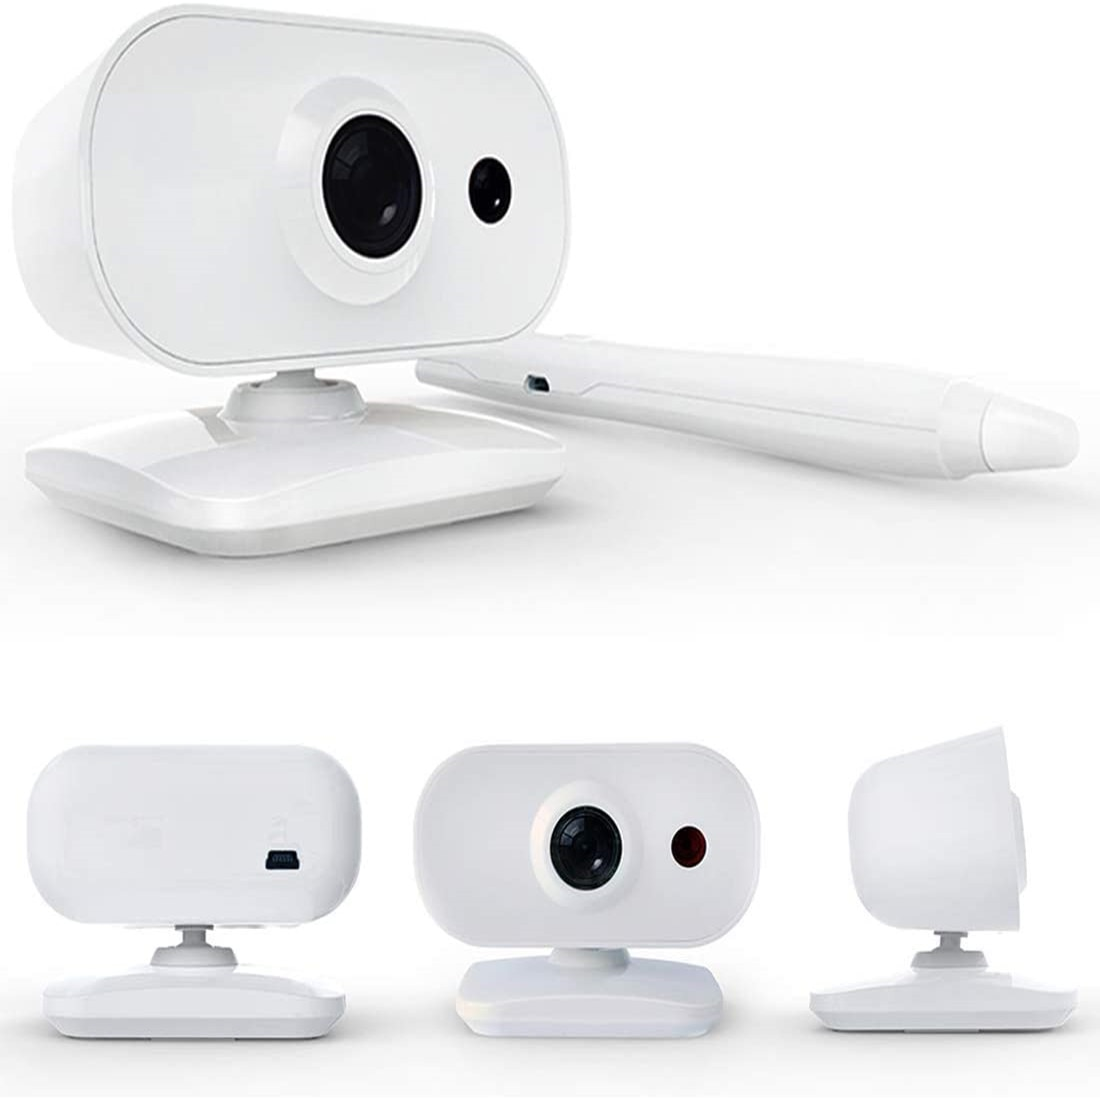 The Telephoto Portable Digital Whiteboard System Mini Smart Whiteboard Projector Is An Ideal Choice For Students And Classrooms